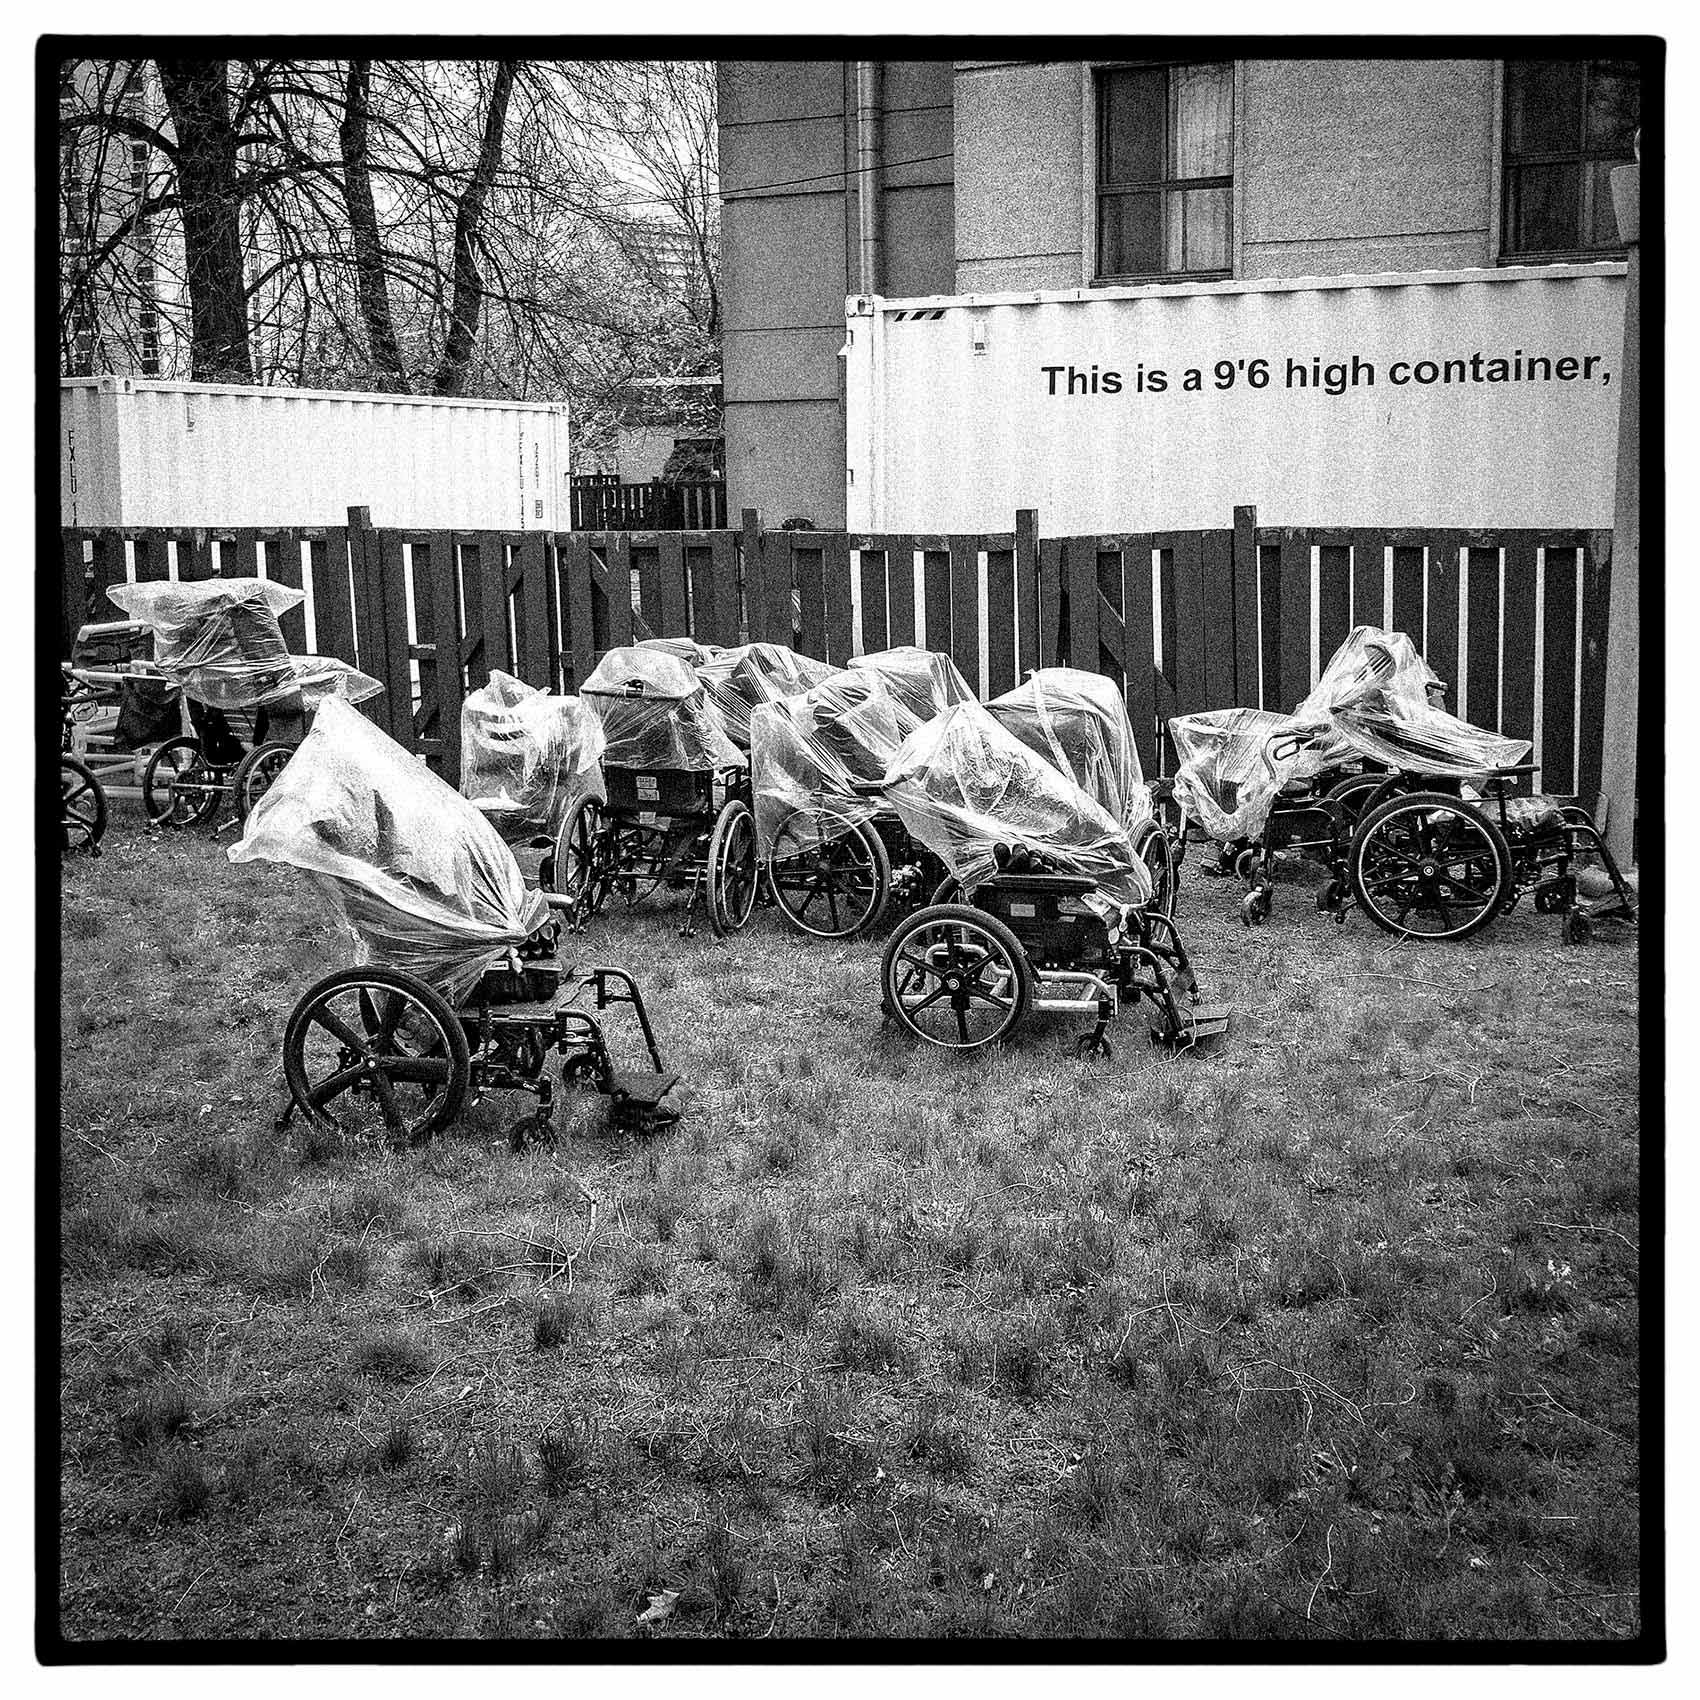 wheelchairs-of-the-dead-sit-outside-the-camilla-care-nursing-home-in-toronto